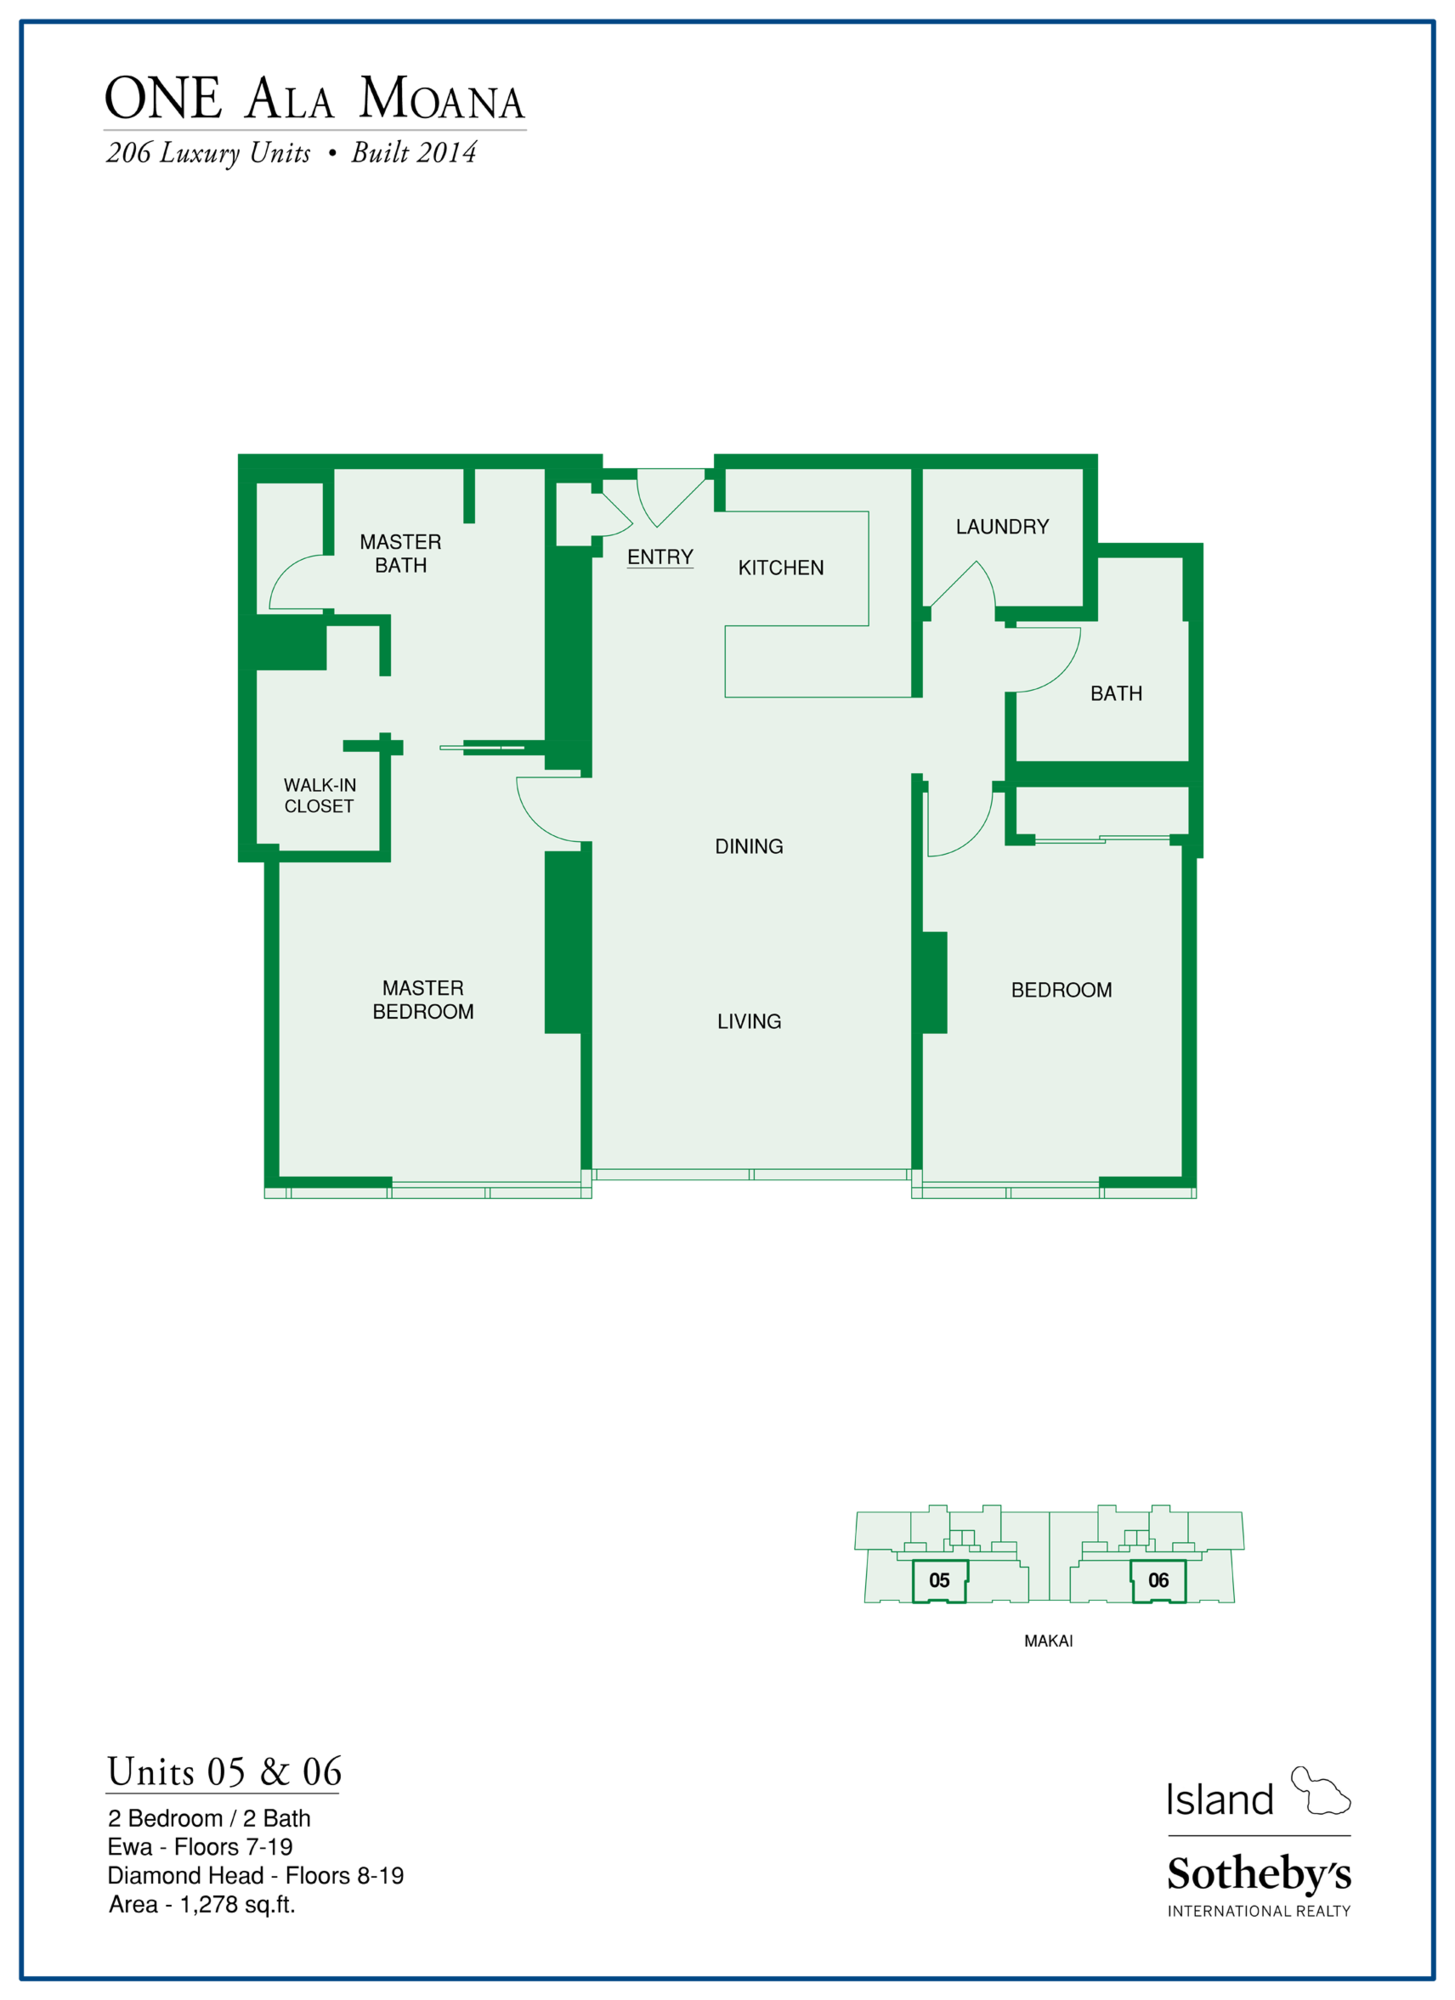 honolulu one ala moana floor plan